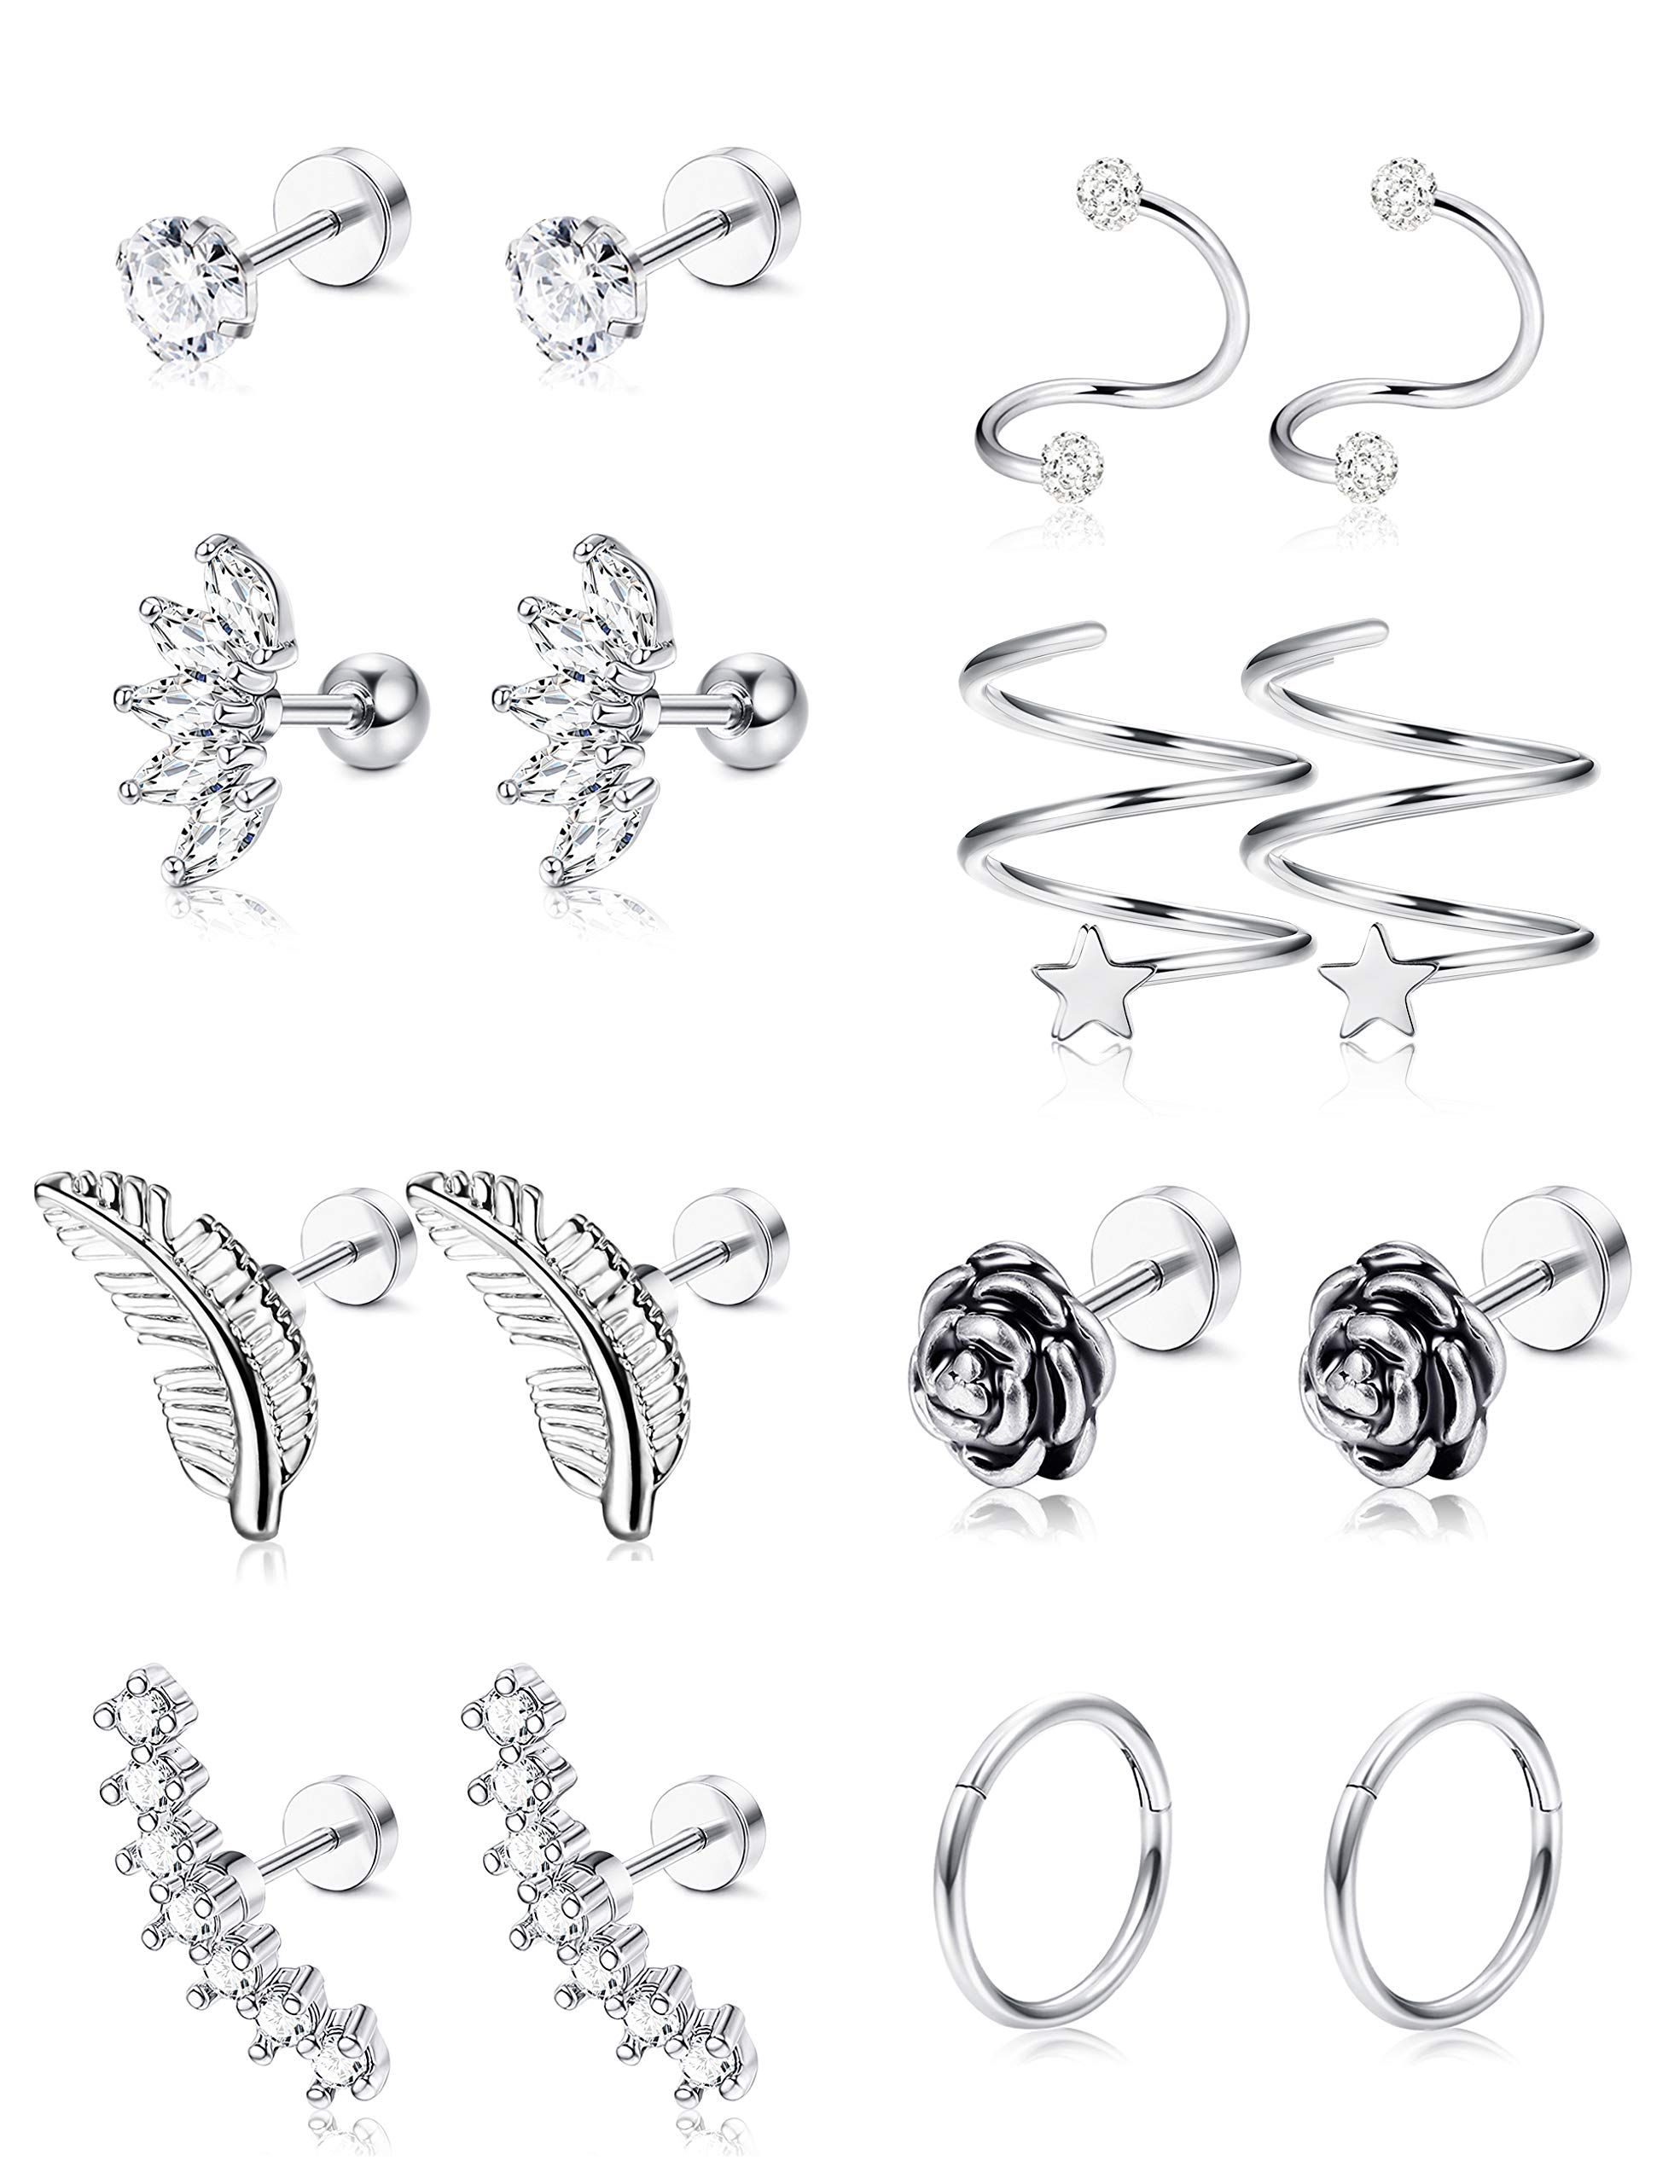 LOYALLOOK 8 Pairs 16G Stainless Steel Flower Feather Cartilage Cubic Zirconia Inlaid Helix Stud Earrings Tragus Piercing Jewelry for Men Women